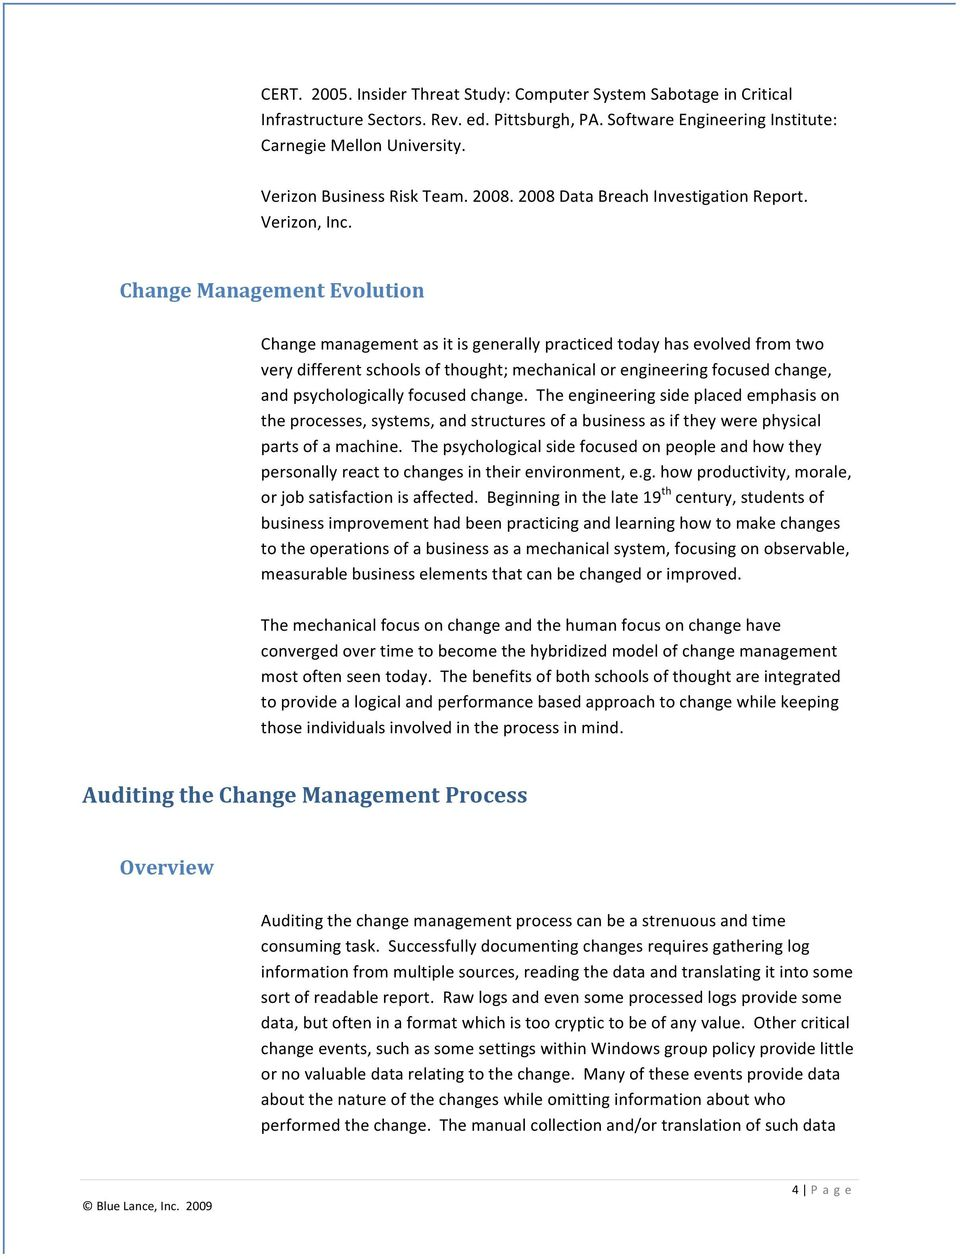 Change Management Evolution Change management as it is generally practiced today has evolved from two very different schools of thought; mechanical or engineering focused change, and psychologically